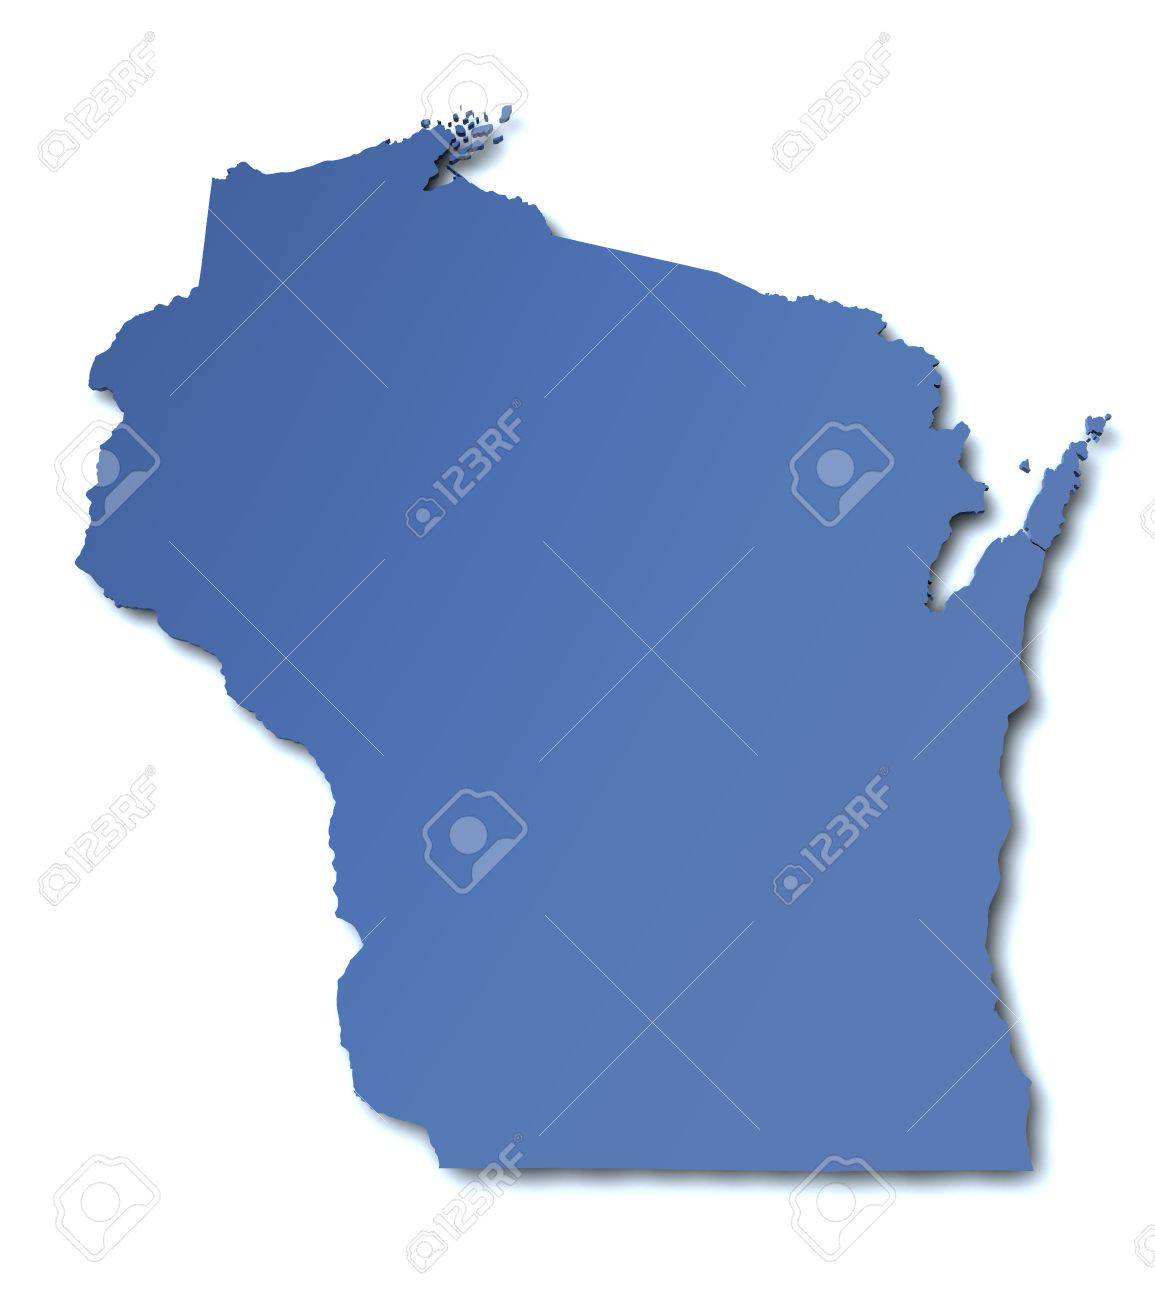 Map Of Wisconsin USA Stock Photo Picture And Royalty Free Image